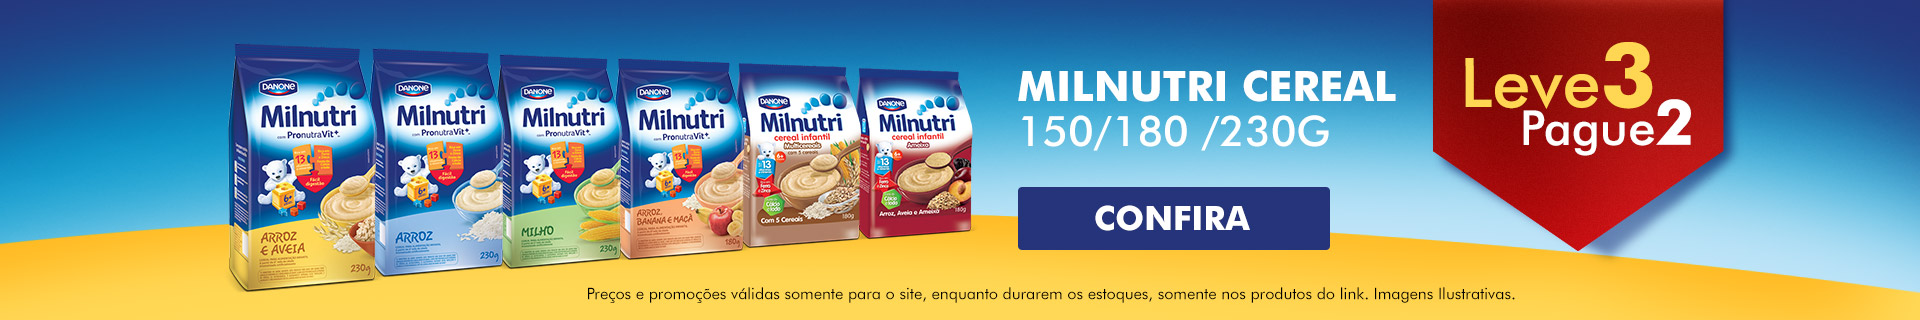 Home | Milnutri Cereal leve 3 Pague 2